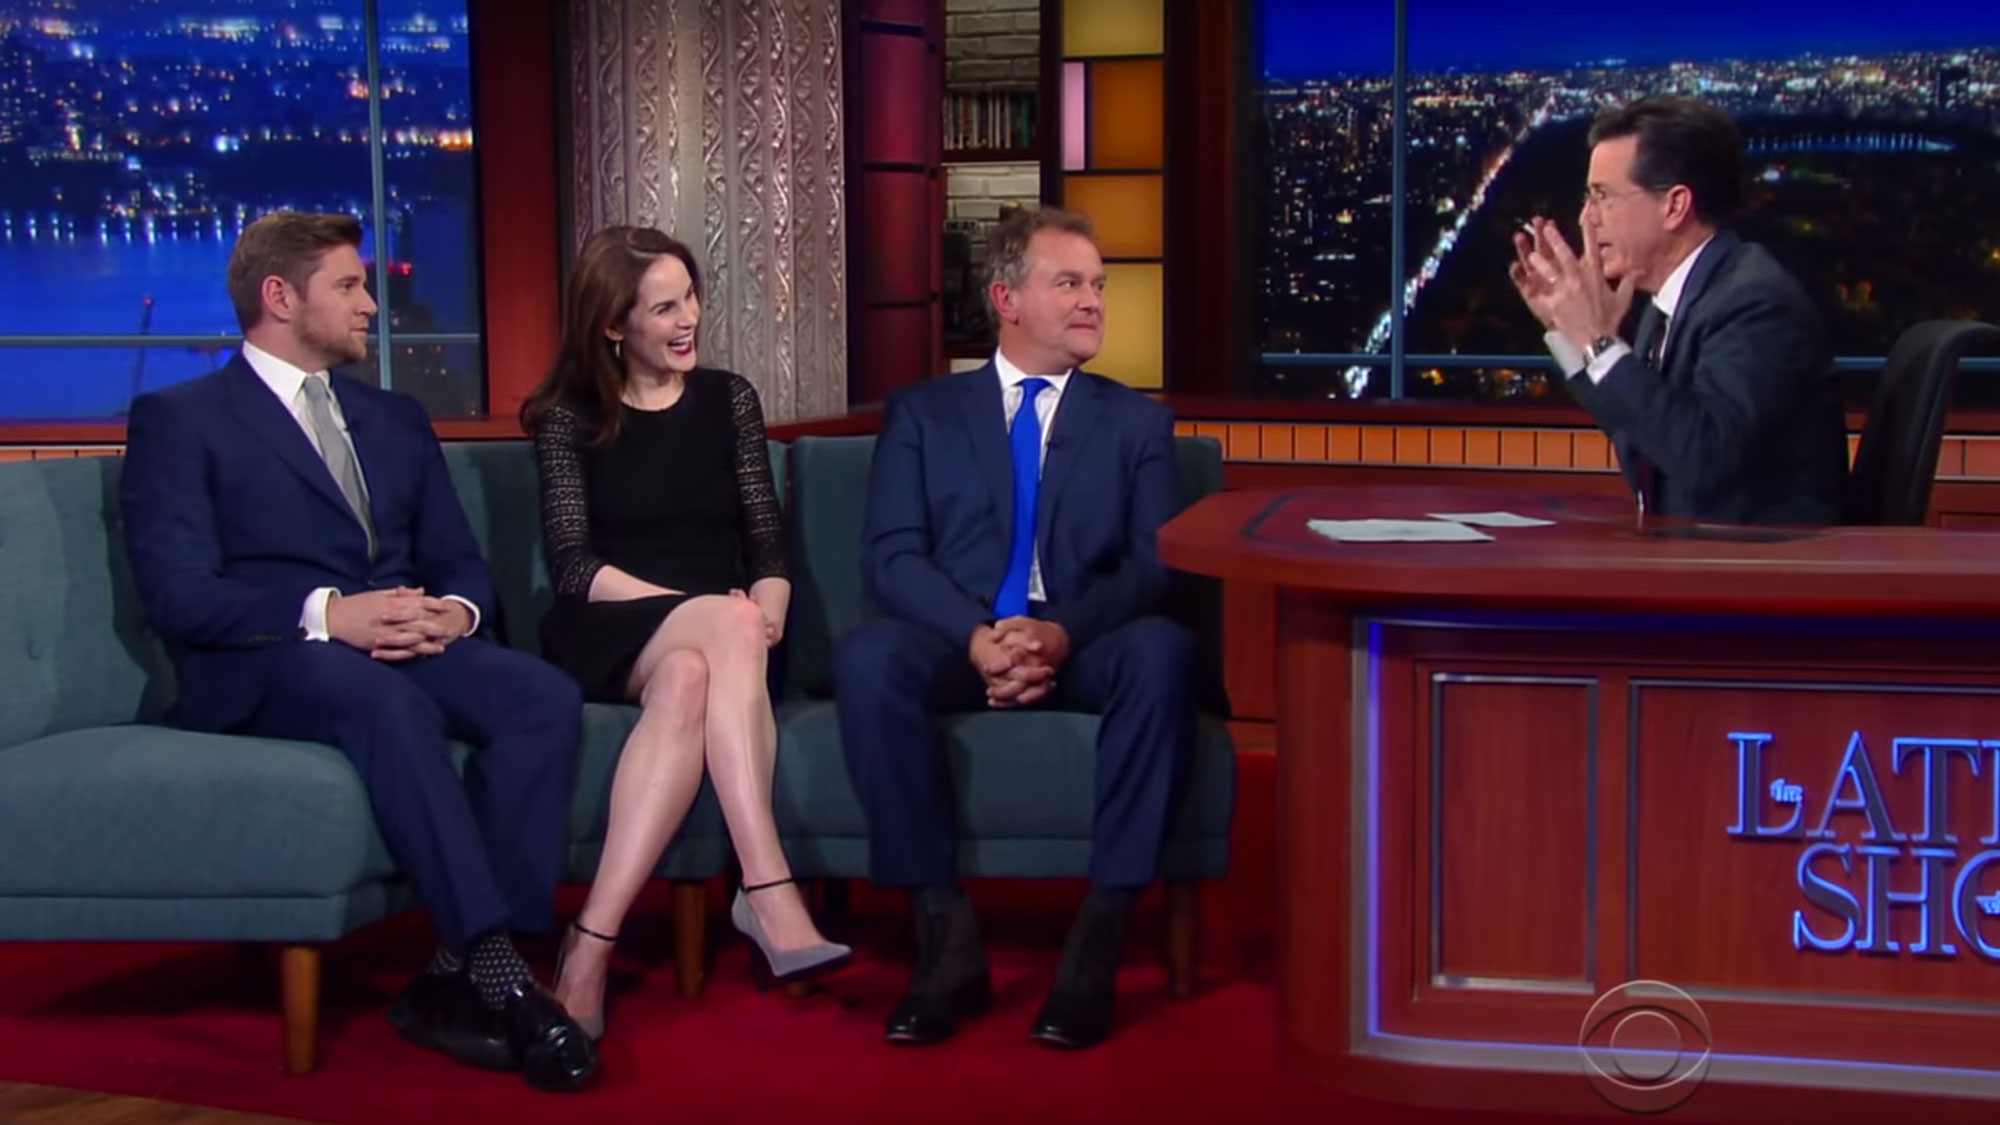 WATCH: U0027Downtonu0027 Stars Perform Scene With American Accents | Anglophenia |  BBC America